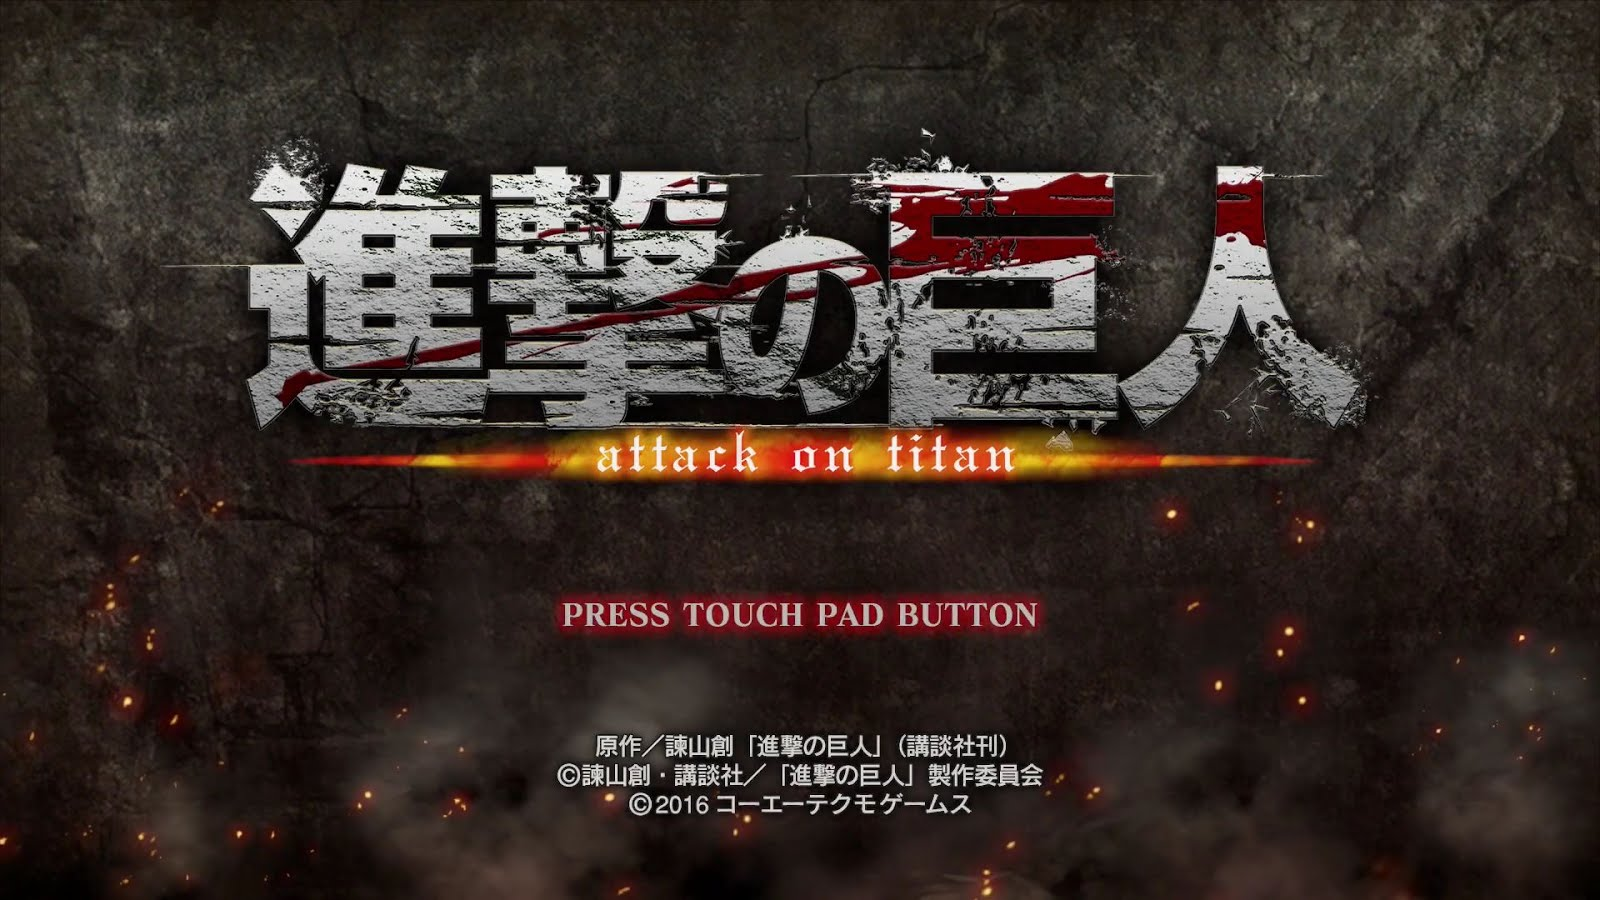 Arcade Root Official Blog Of Arcaderoot Youtube Channel Attack On Sony Ps4 Titan Game Is Out